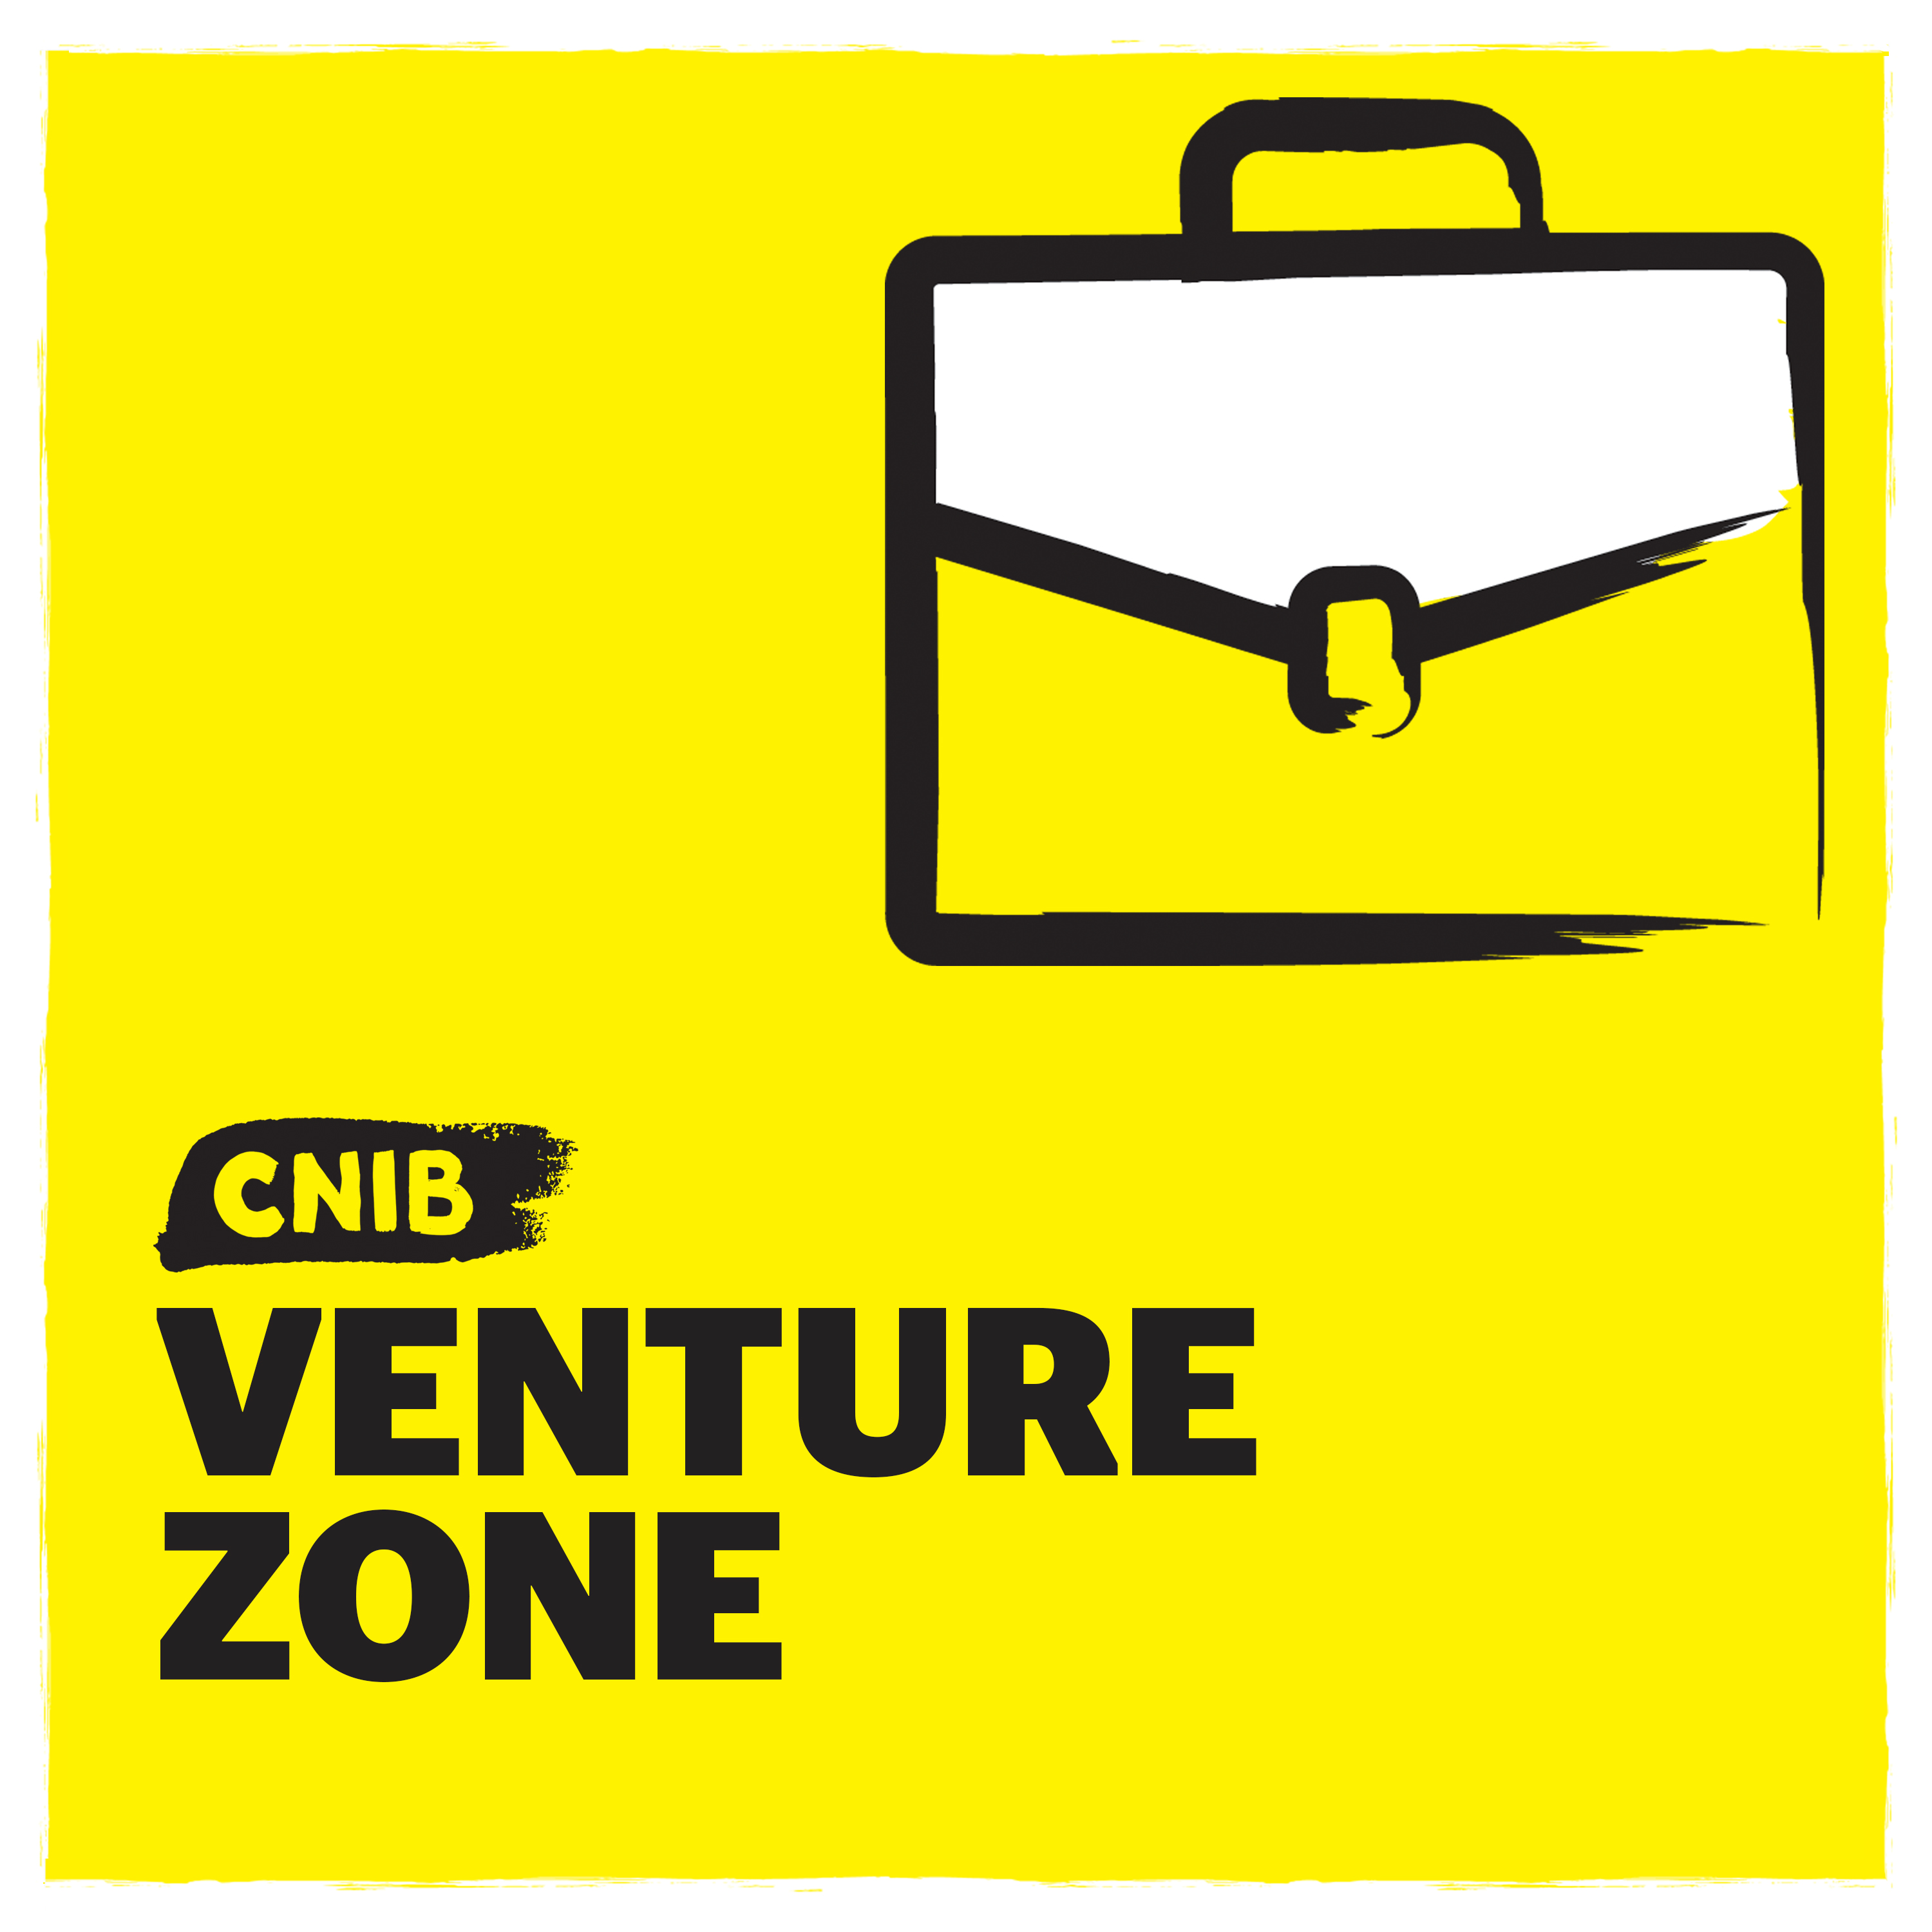 CNIB Venture Zone logo. An illustration of a briefcase on a yellow background.